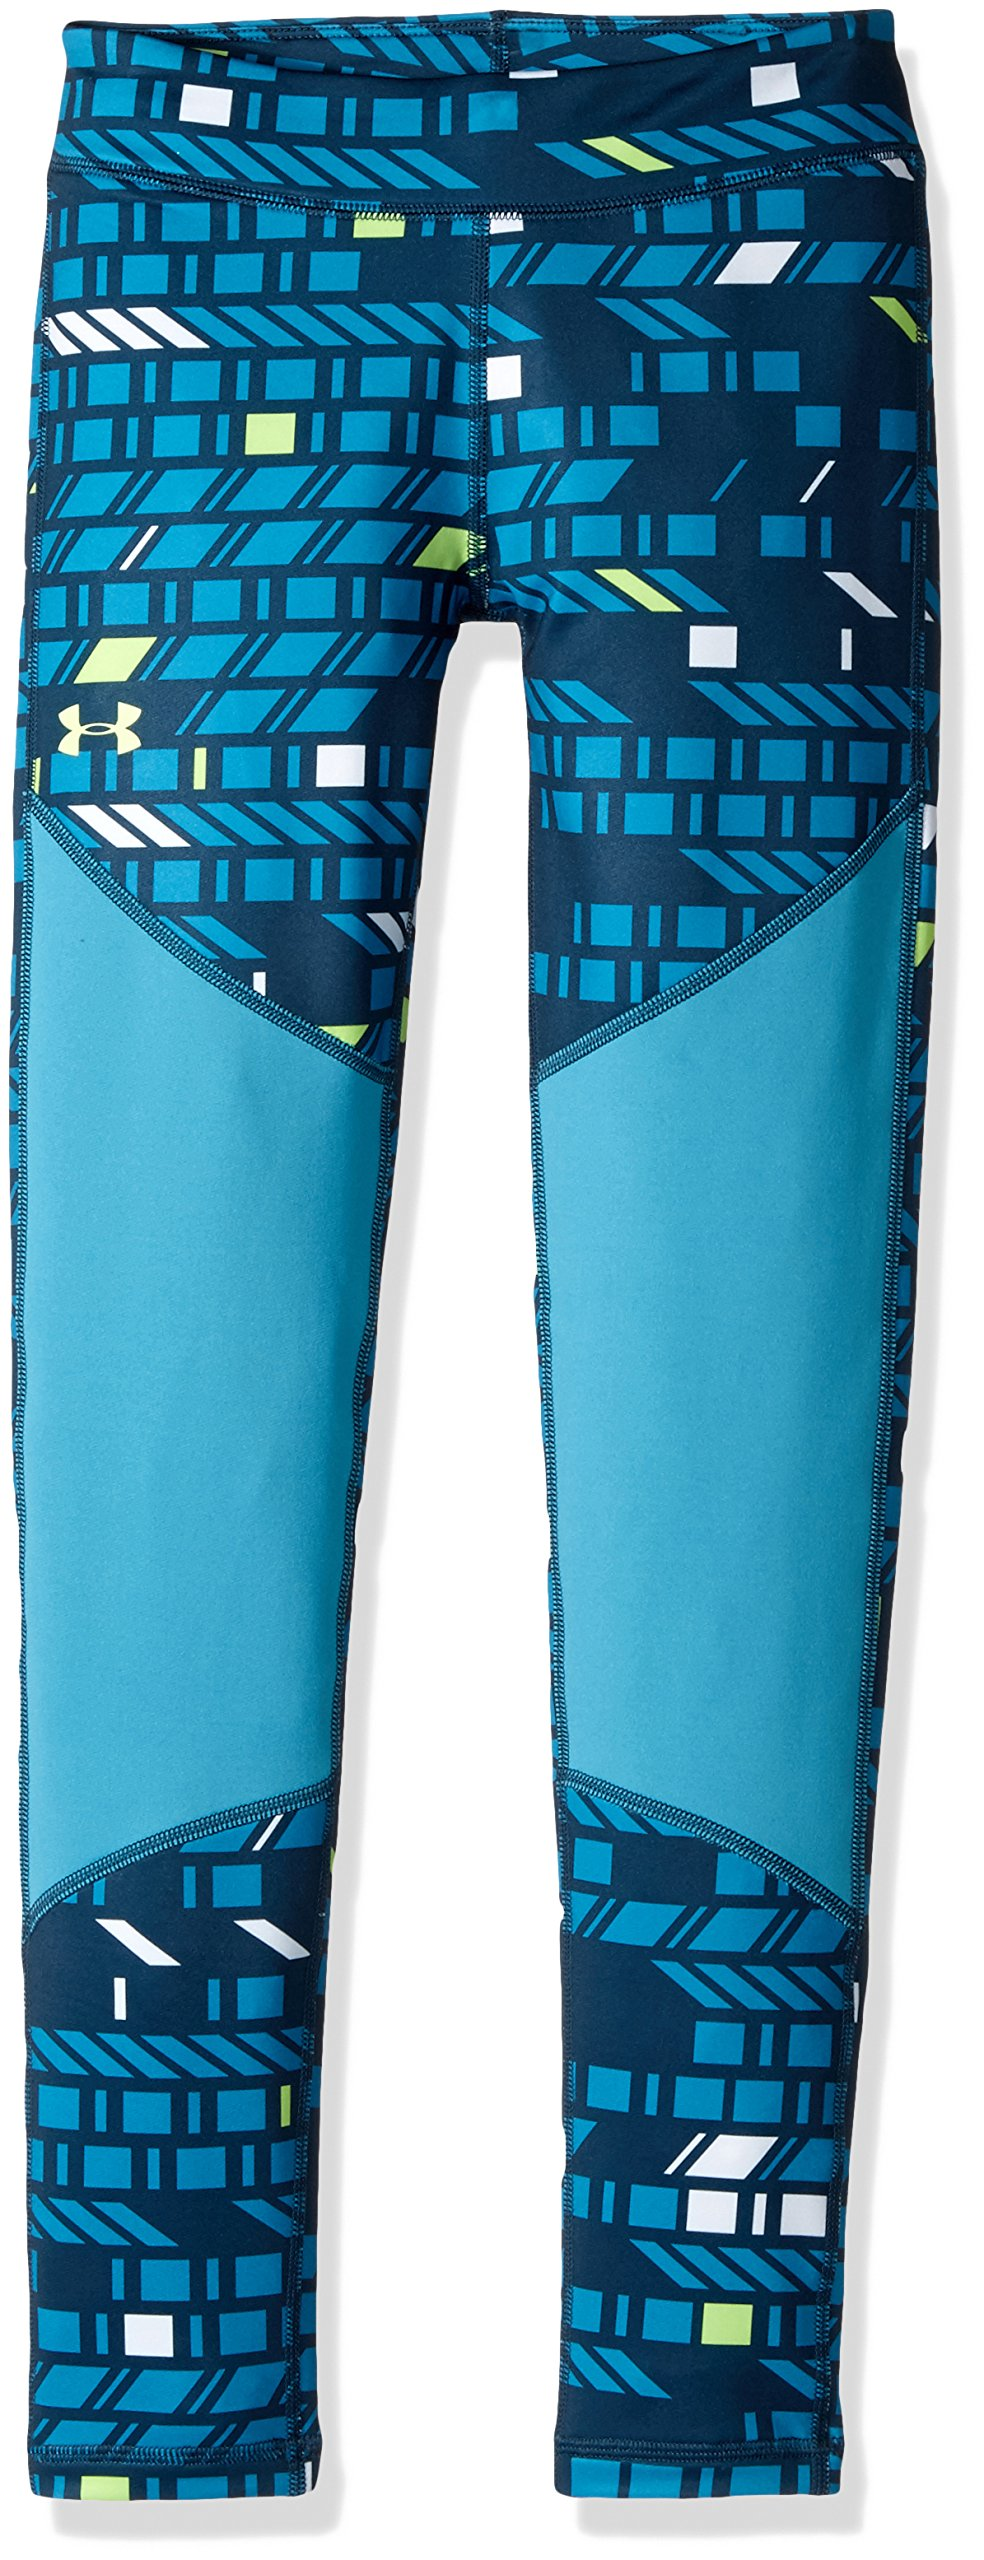 Under Armour Girls' ColdGear Novelty Leggings,True Ink (918)/Quirky Lime, Youth X-Large by Under Armour